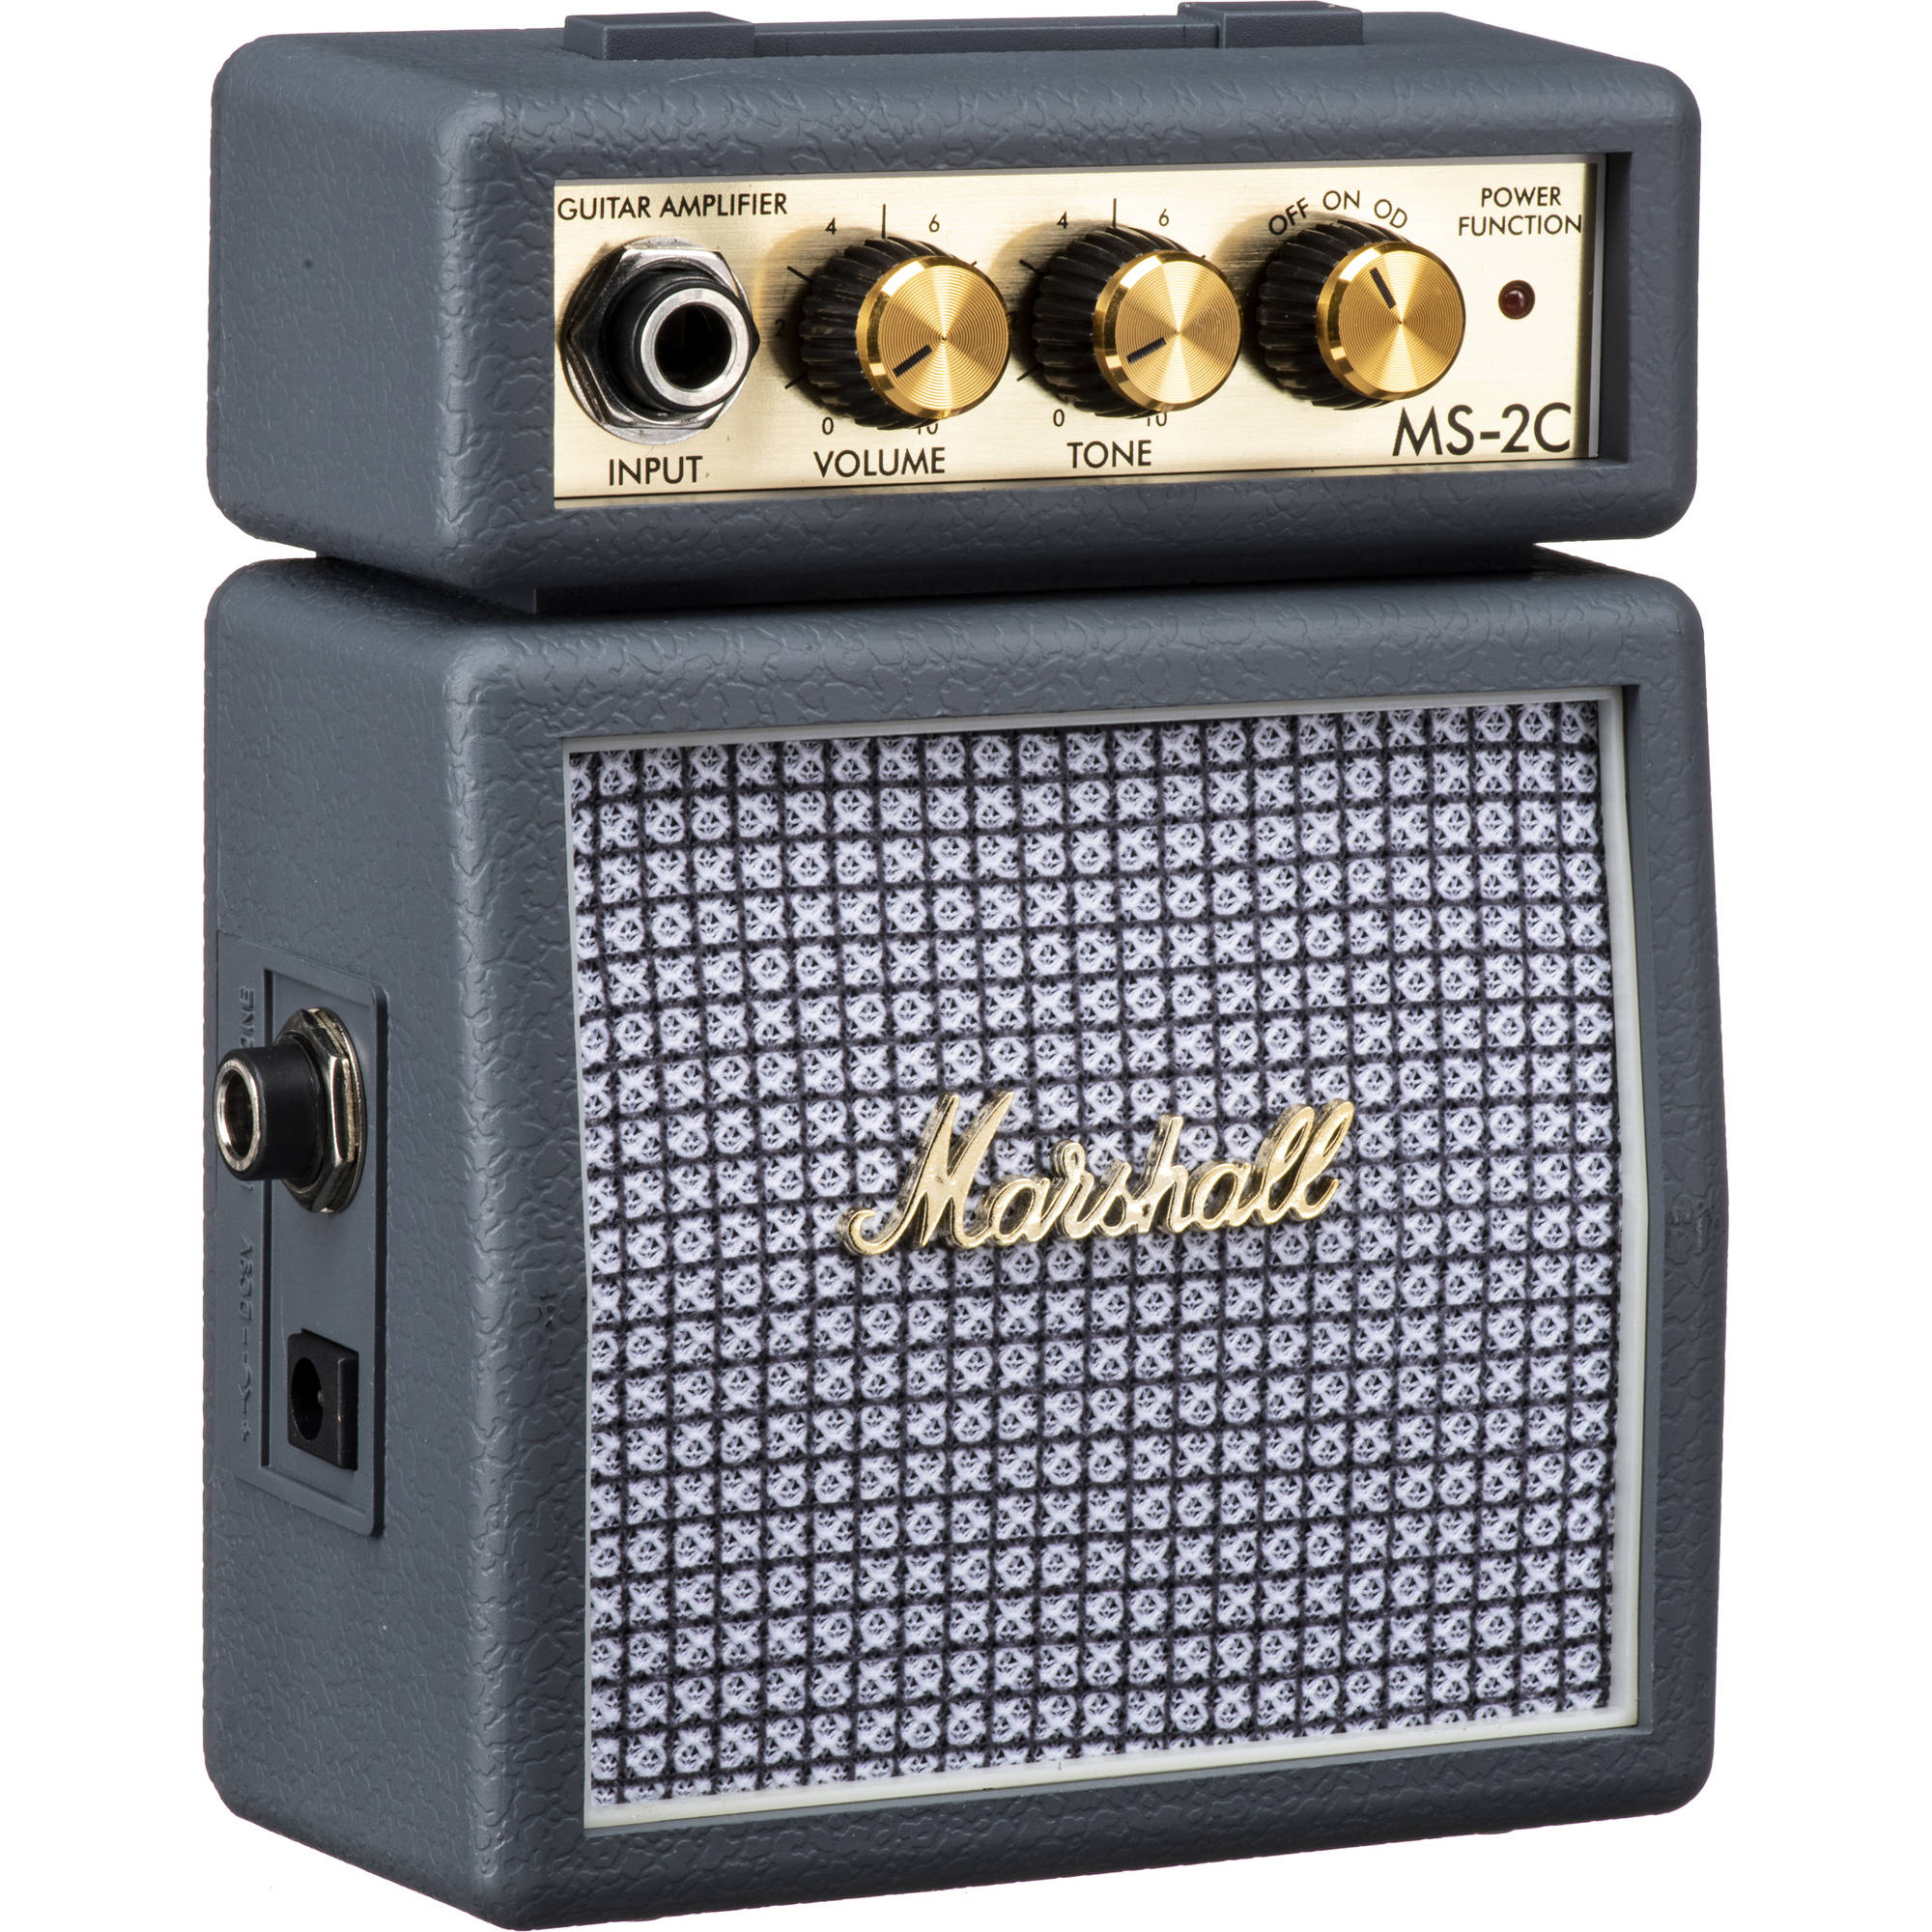 marshall amplification ms 2c micro amp mini practice amp ms 2c. Black Bedroom Furniture Sets. Home Design Ideas